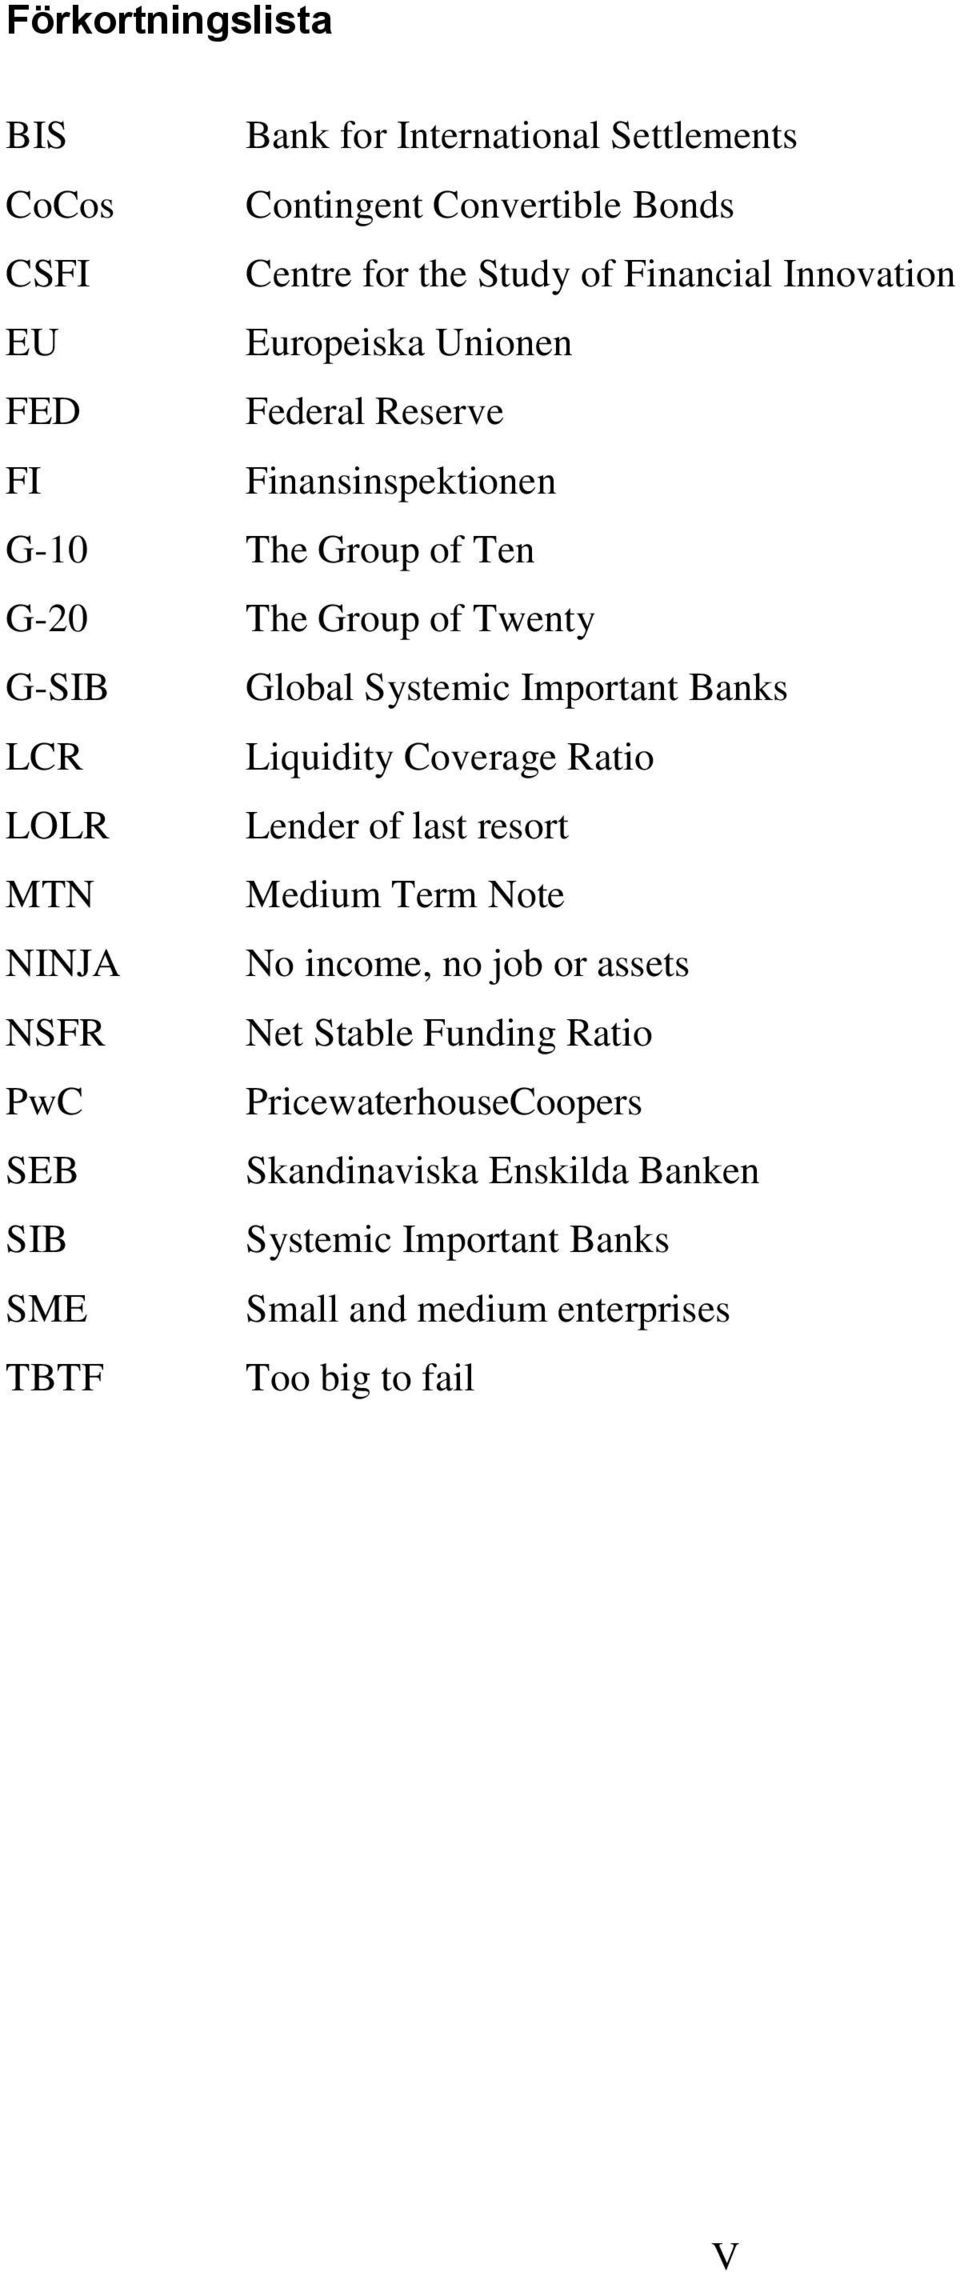 Banks LCR Liquidity Coverage Ratio LOLR Lender of last resort MTN Medium Term Note NINJA No income, no job or assets NSFR Net Stable Funding